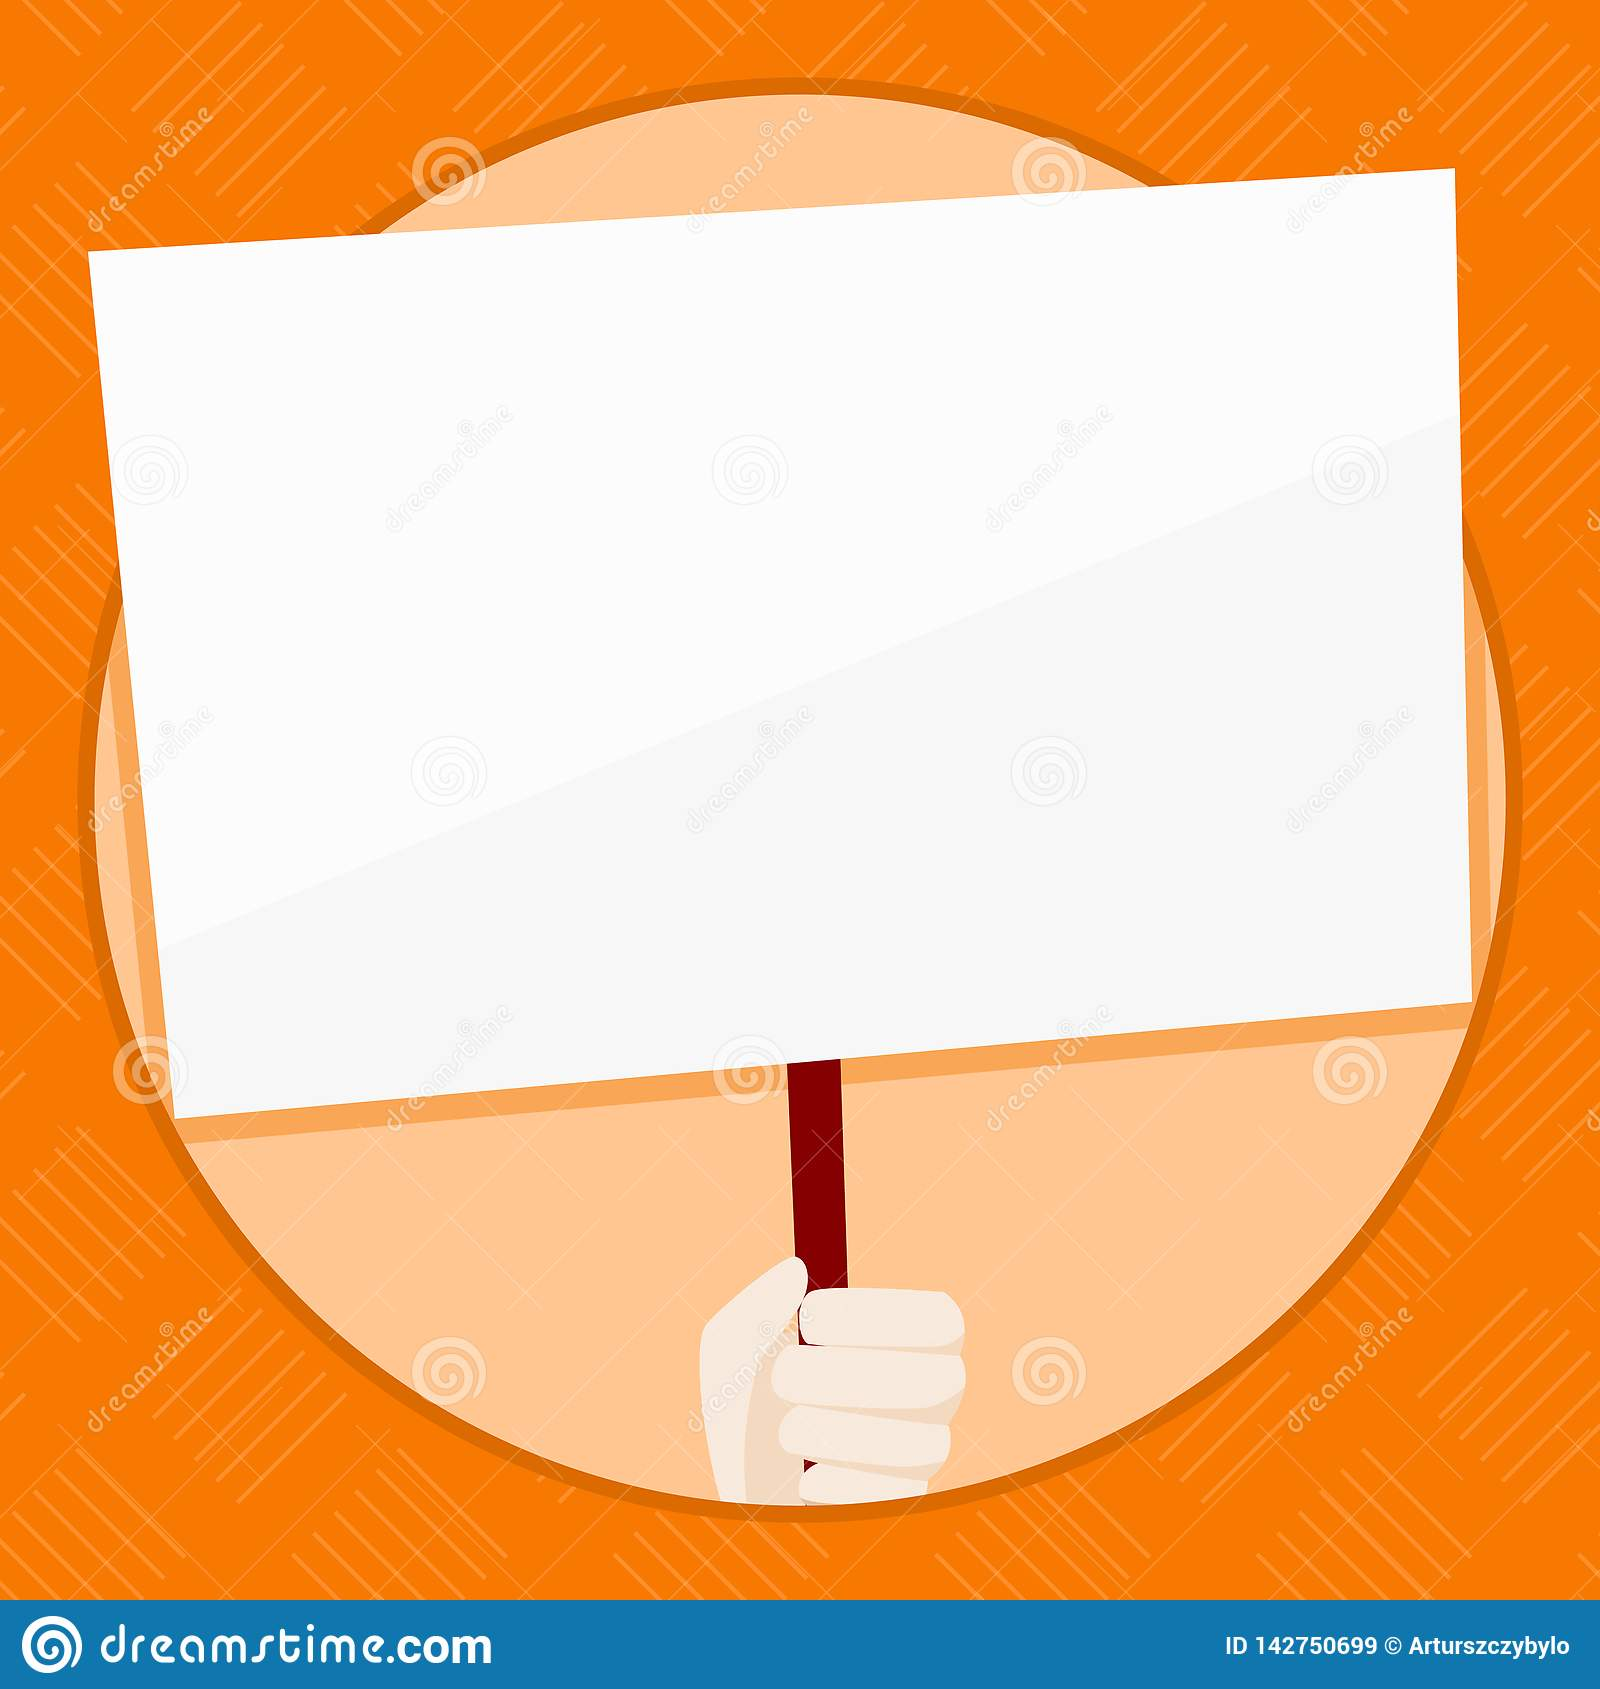 Hand Holding Blank Rectangular Shape Placard. White Empty Board Supported by Wooden Handle Inside Circle. Creative